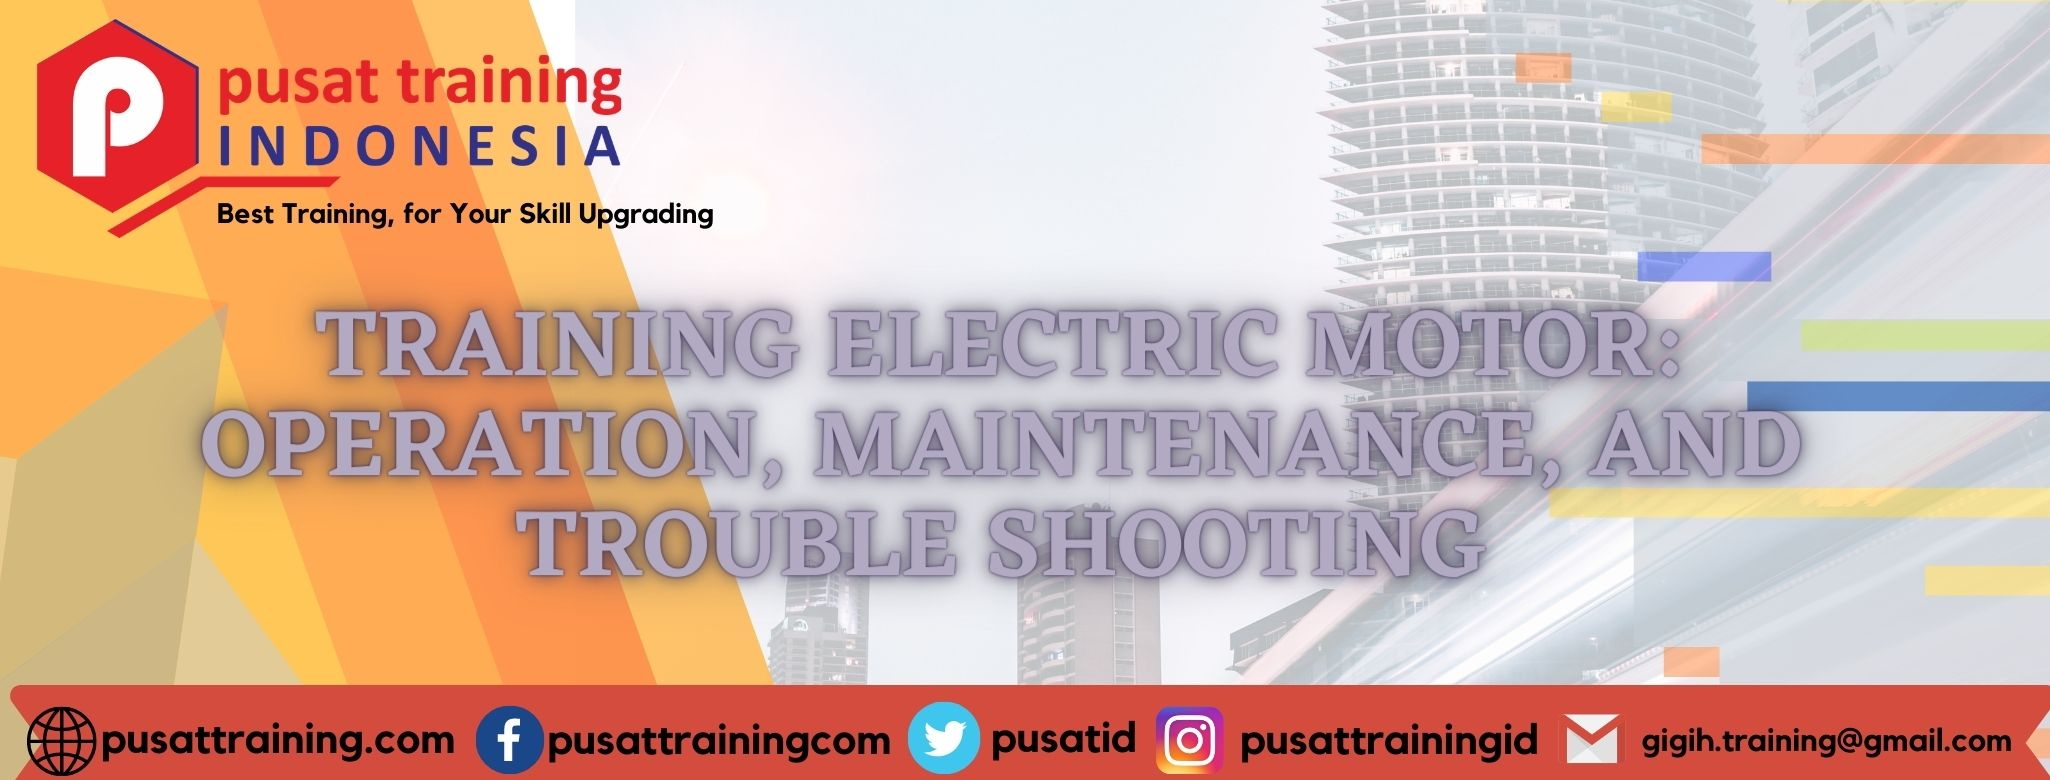 TRAINING ELECTRIC MOTOR OPERATION, MAINTENANCE, AND TROUBLE SHOOTING